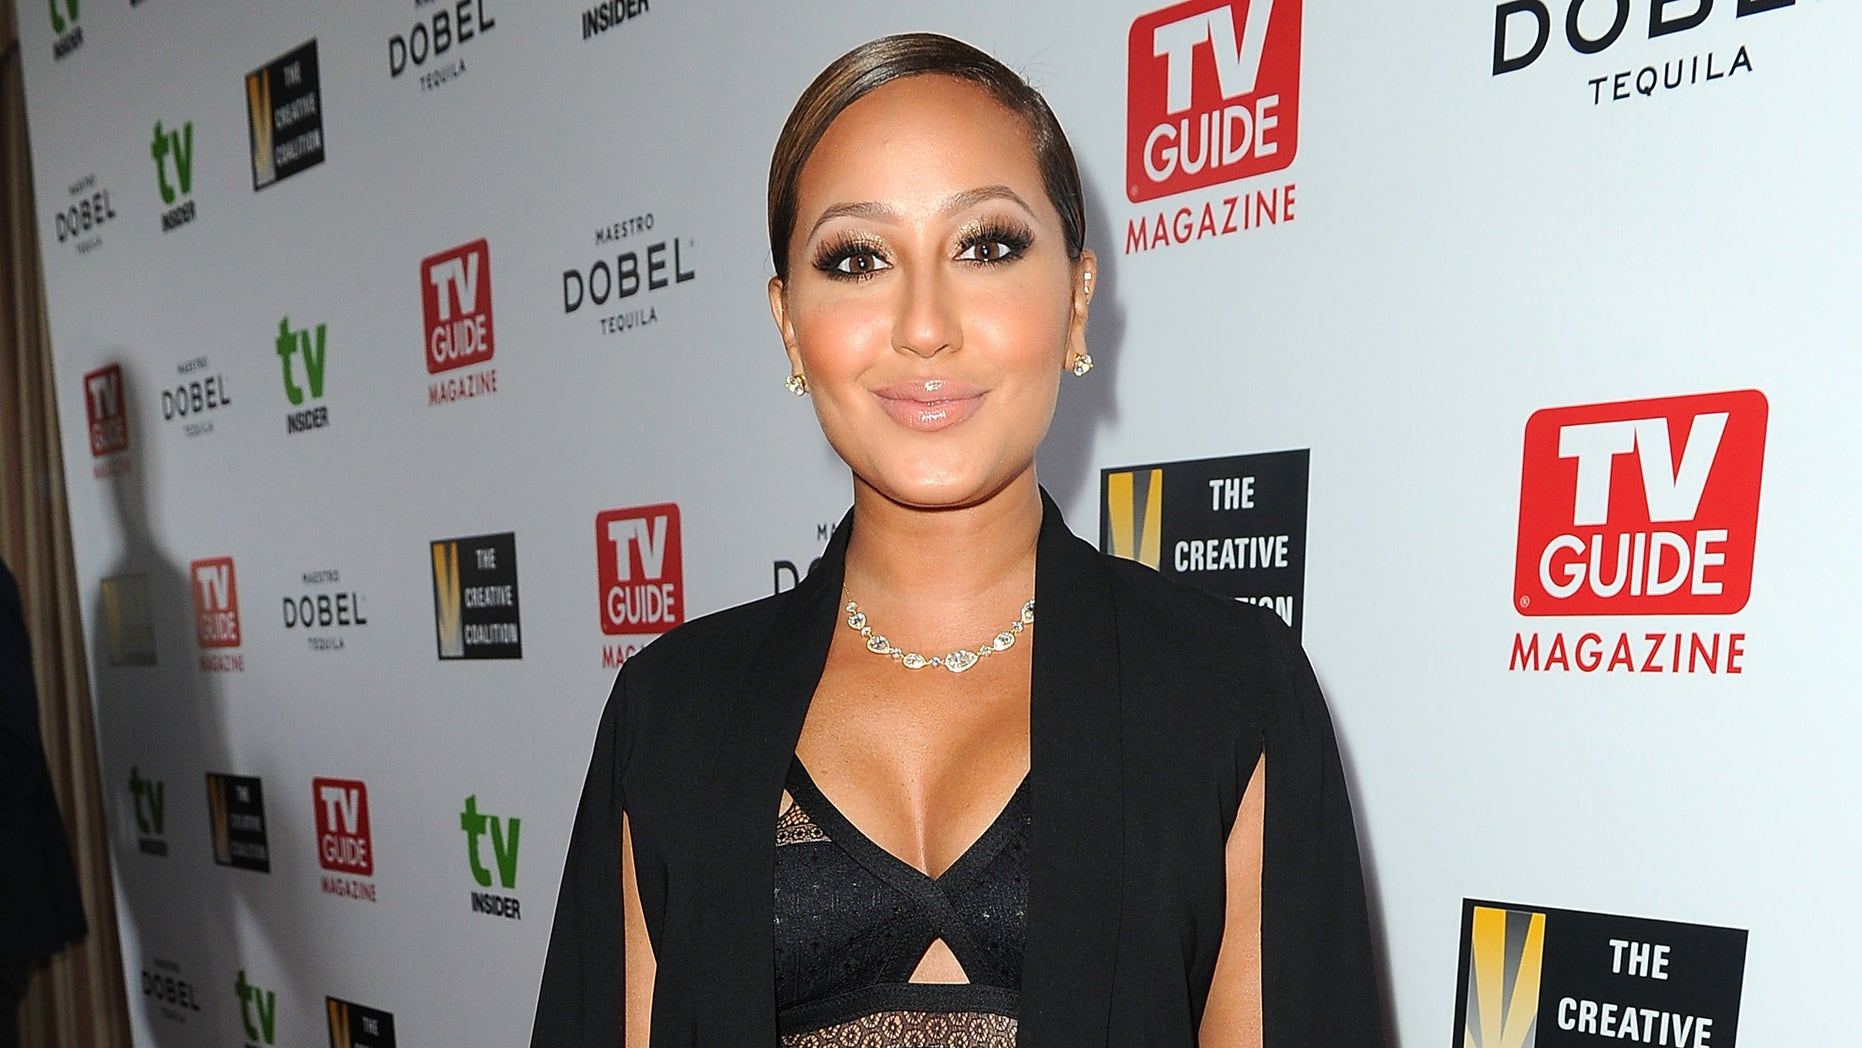 WEST HOLLYWOOD, CA - SEPTEMBER 18:  Adrienne Bailon arrives at the Television Industry Advocacy Awards benefitting The Creative Coalition hosted by TV Guide Magazine and TVInsider with support from Maestro Dobel Tequila, produced by AMPitLIVE at Sunset Tower Hotel on September 18, 2015 in West Hollywood, California.  (Photo by Joshua Blanchard/Getty Images for Maestro Dobel Tequila)